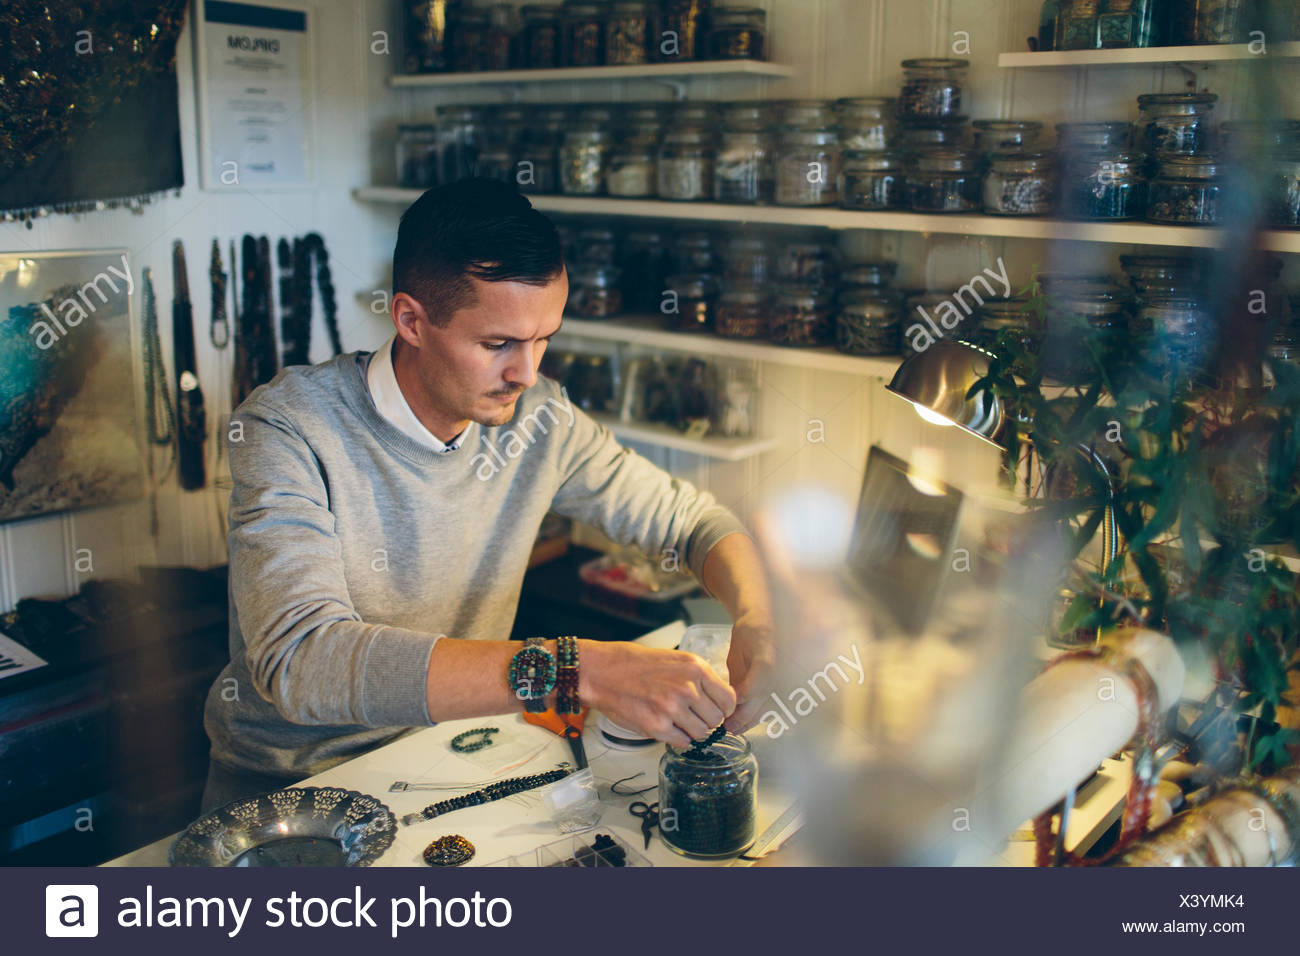 A man making beaded jewelry - Stock Image